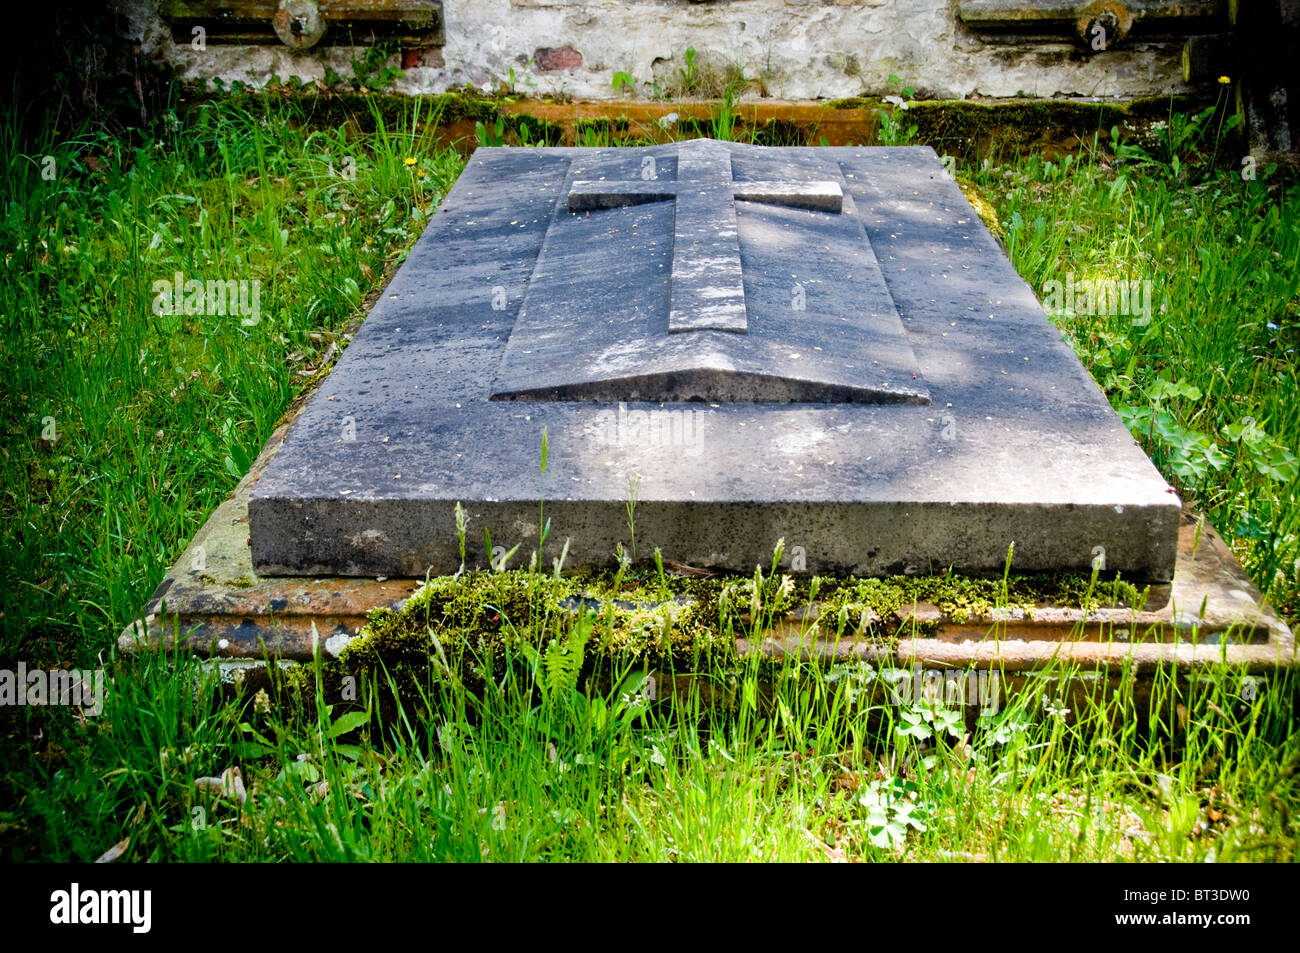 a tombstone in a graveyard - Stock Image